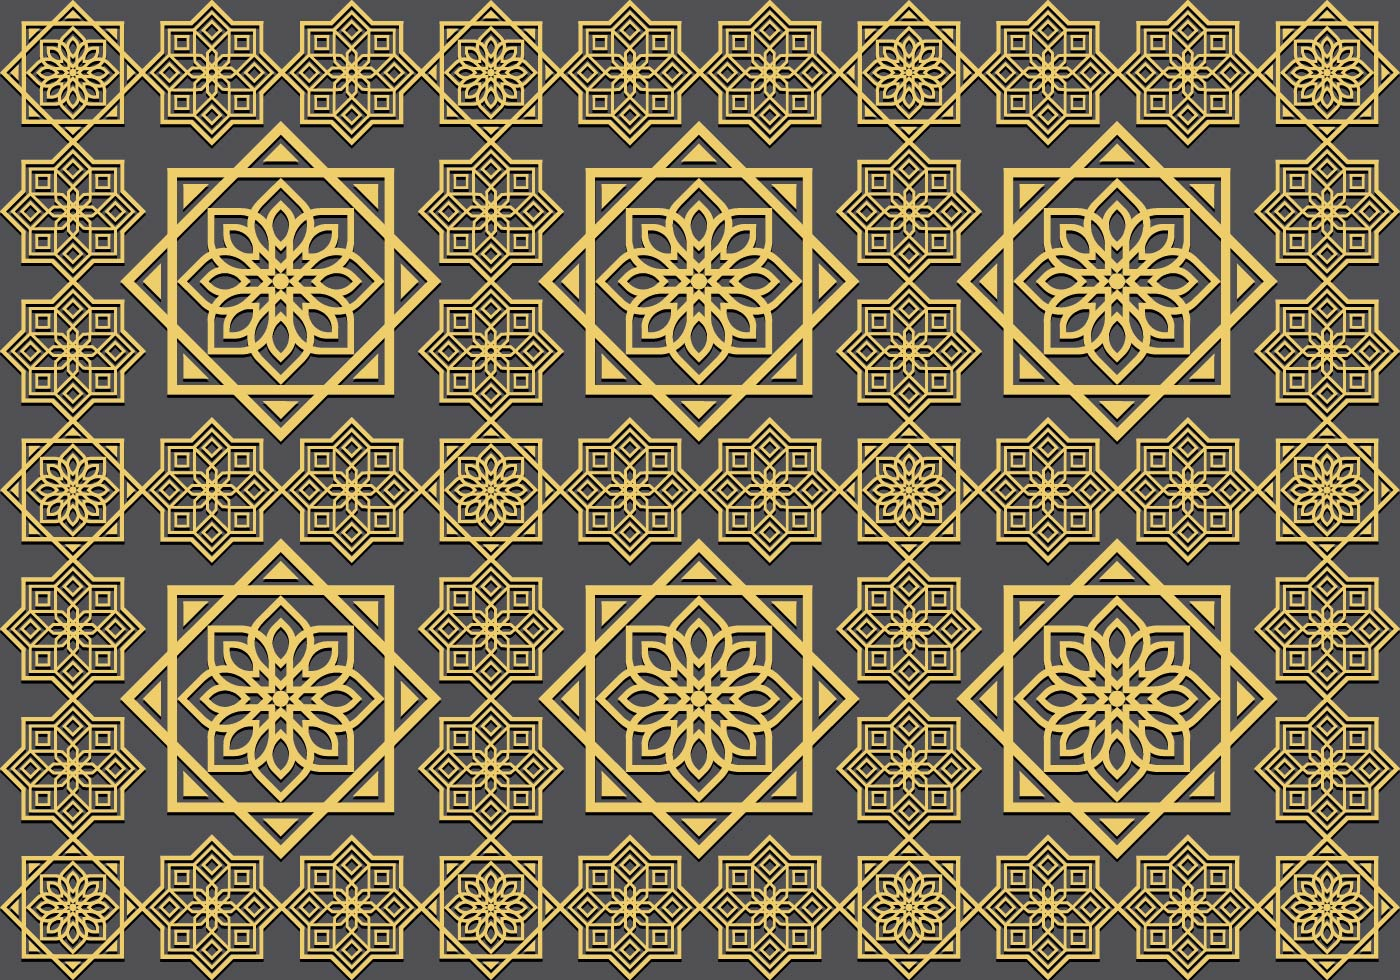 142483 Islamic Ornament Seamless Pattern on Geometry Border